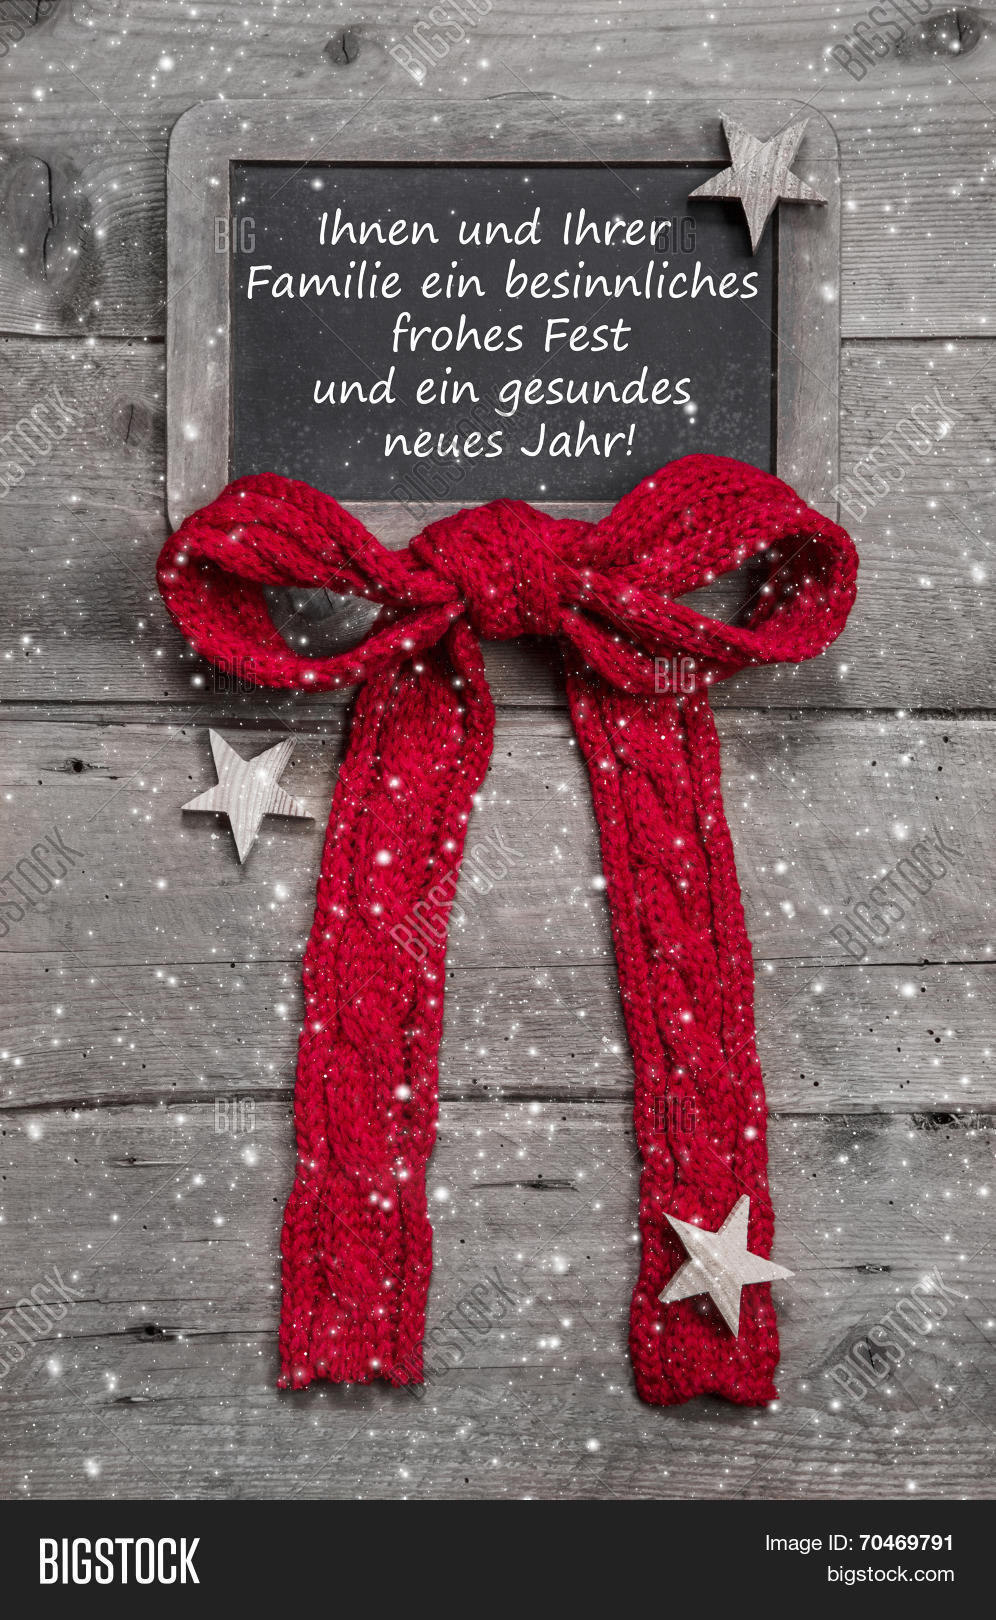 Merry christmas happy image photo free trial bigstock merry christmas and a happy new year greeting card with german text in old country style m4hsunfo